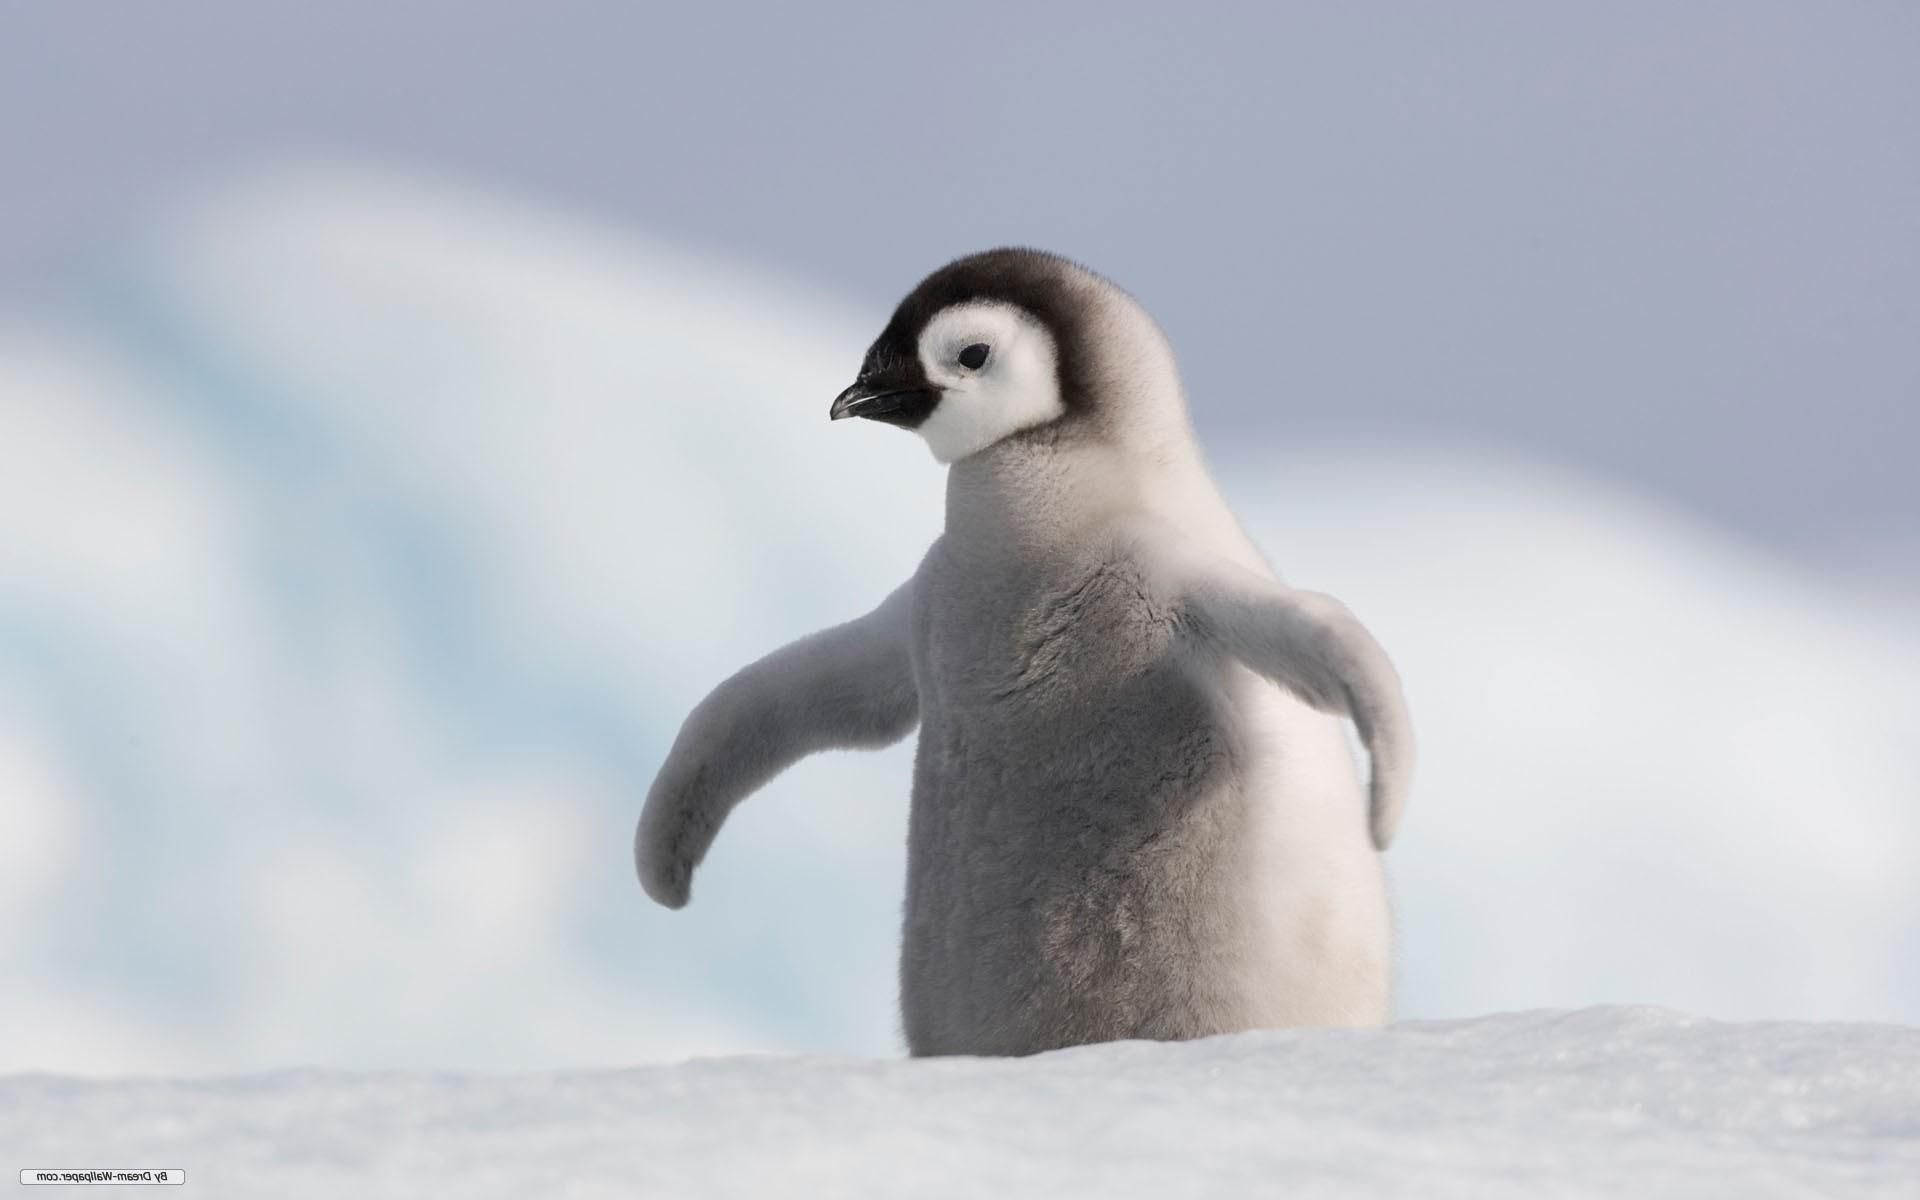 Baby Penguin Wallpaper High Quality Resolution With High Resolution 1920x1200 Px 84 57 Kb Penguin Wallpaper Animals Baby Penguins